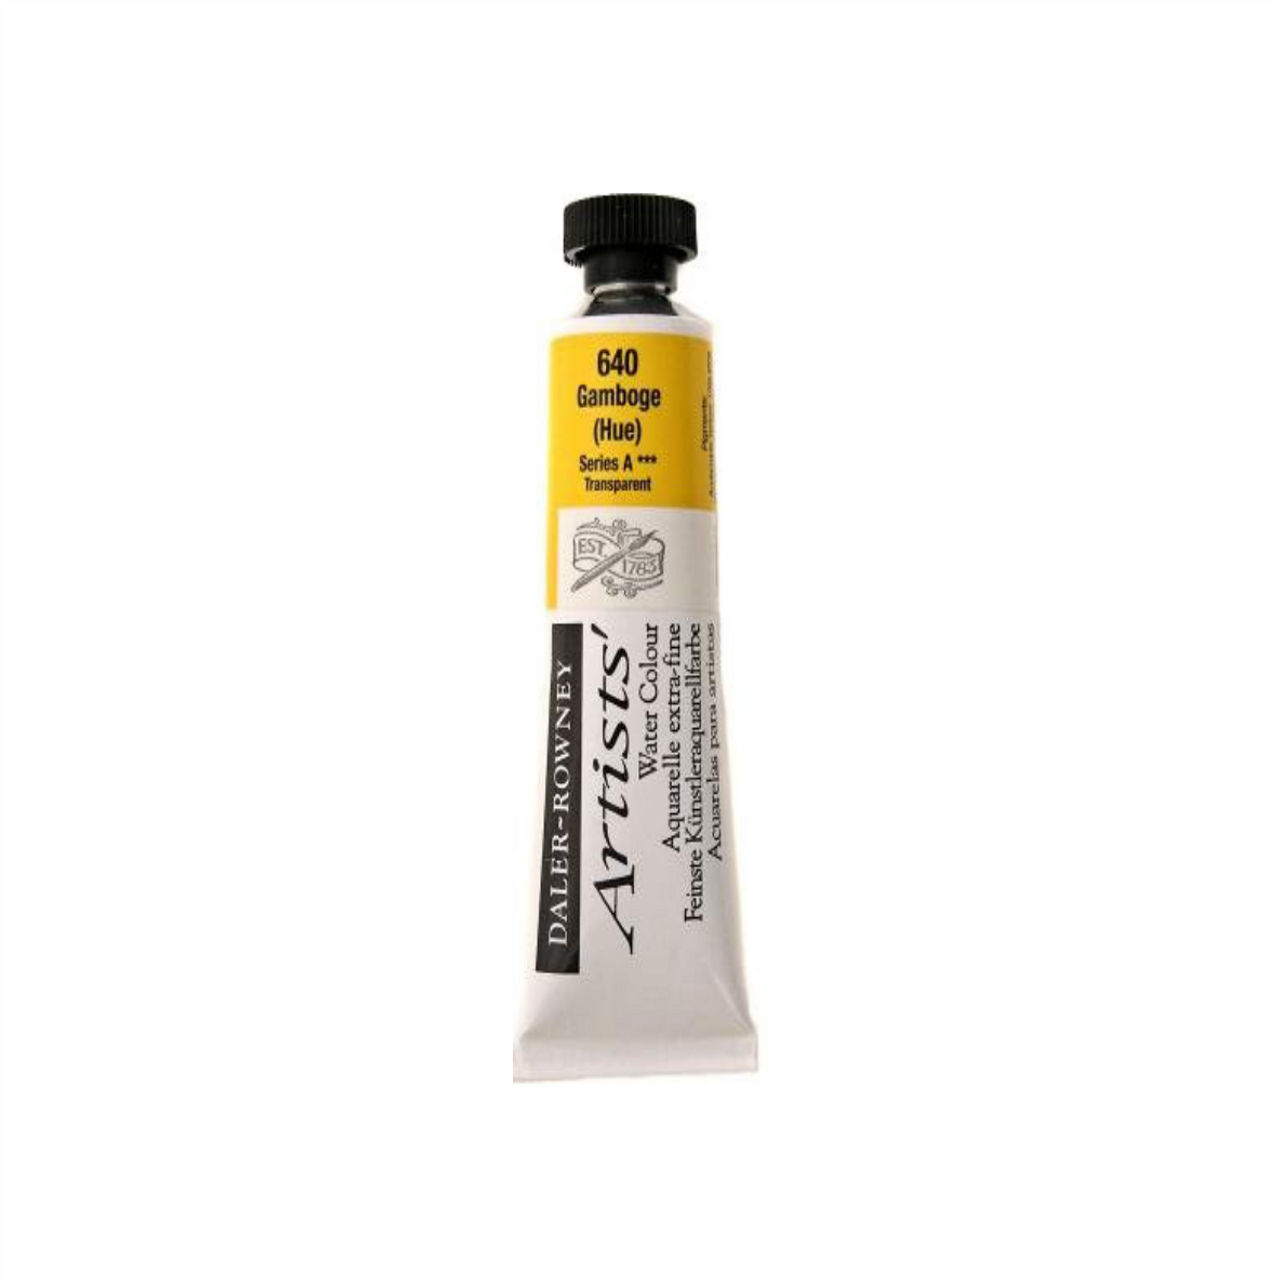 Daler-Rowney Artists' Watercolour Tube 15ml - Gamboge Hue #640